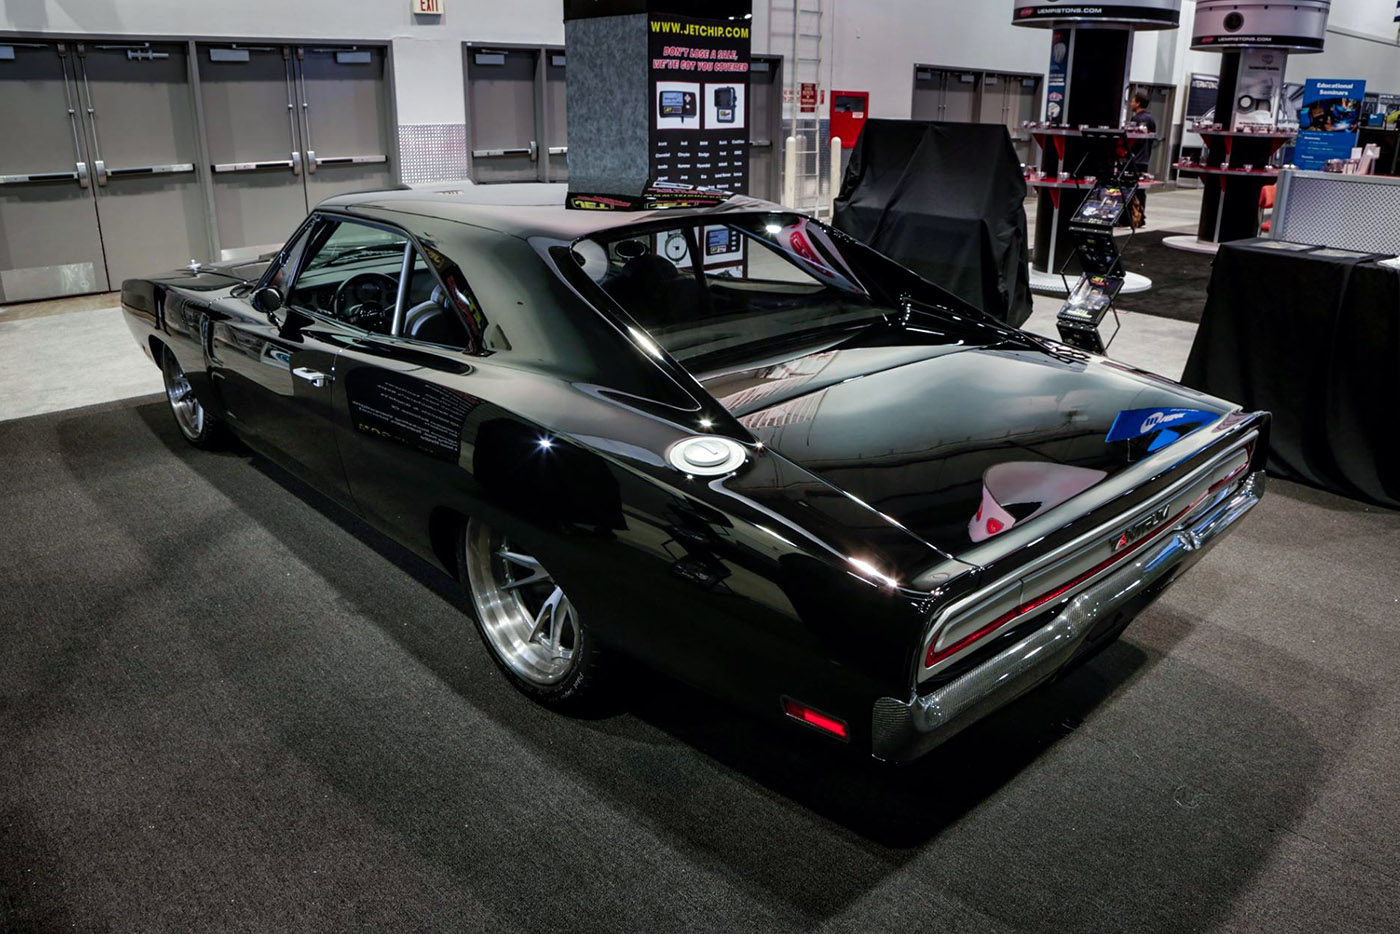 1970 Dodge Charger With A 1650 Hp Mercury Racing Engine Engine